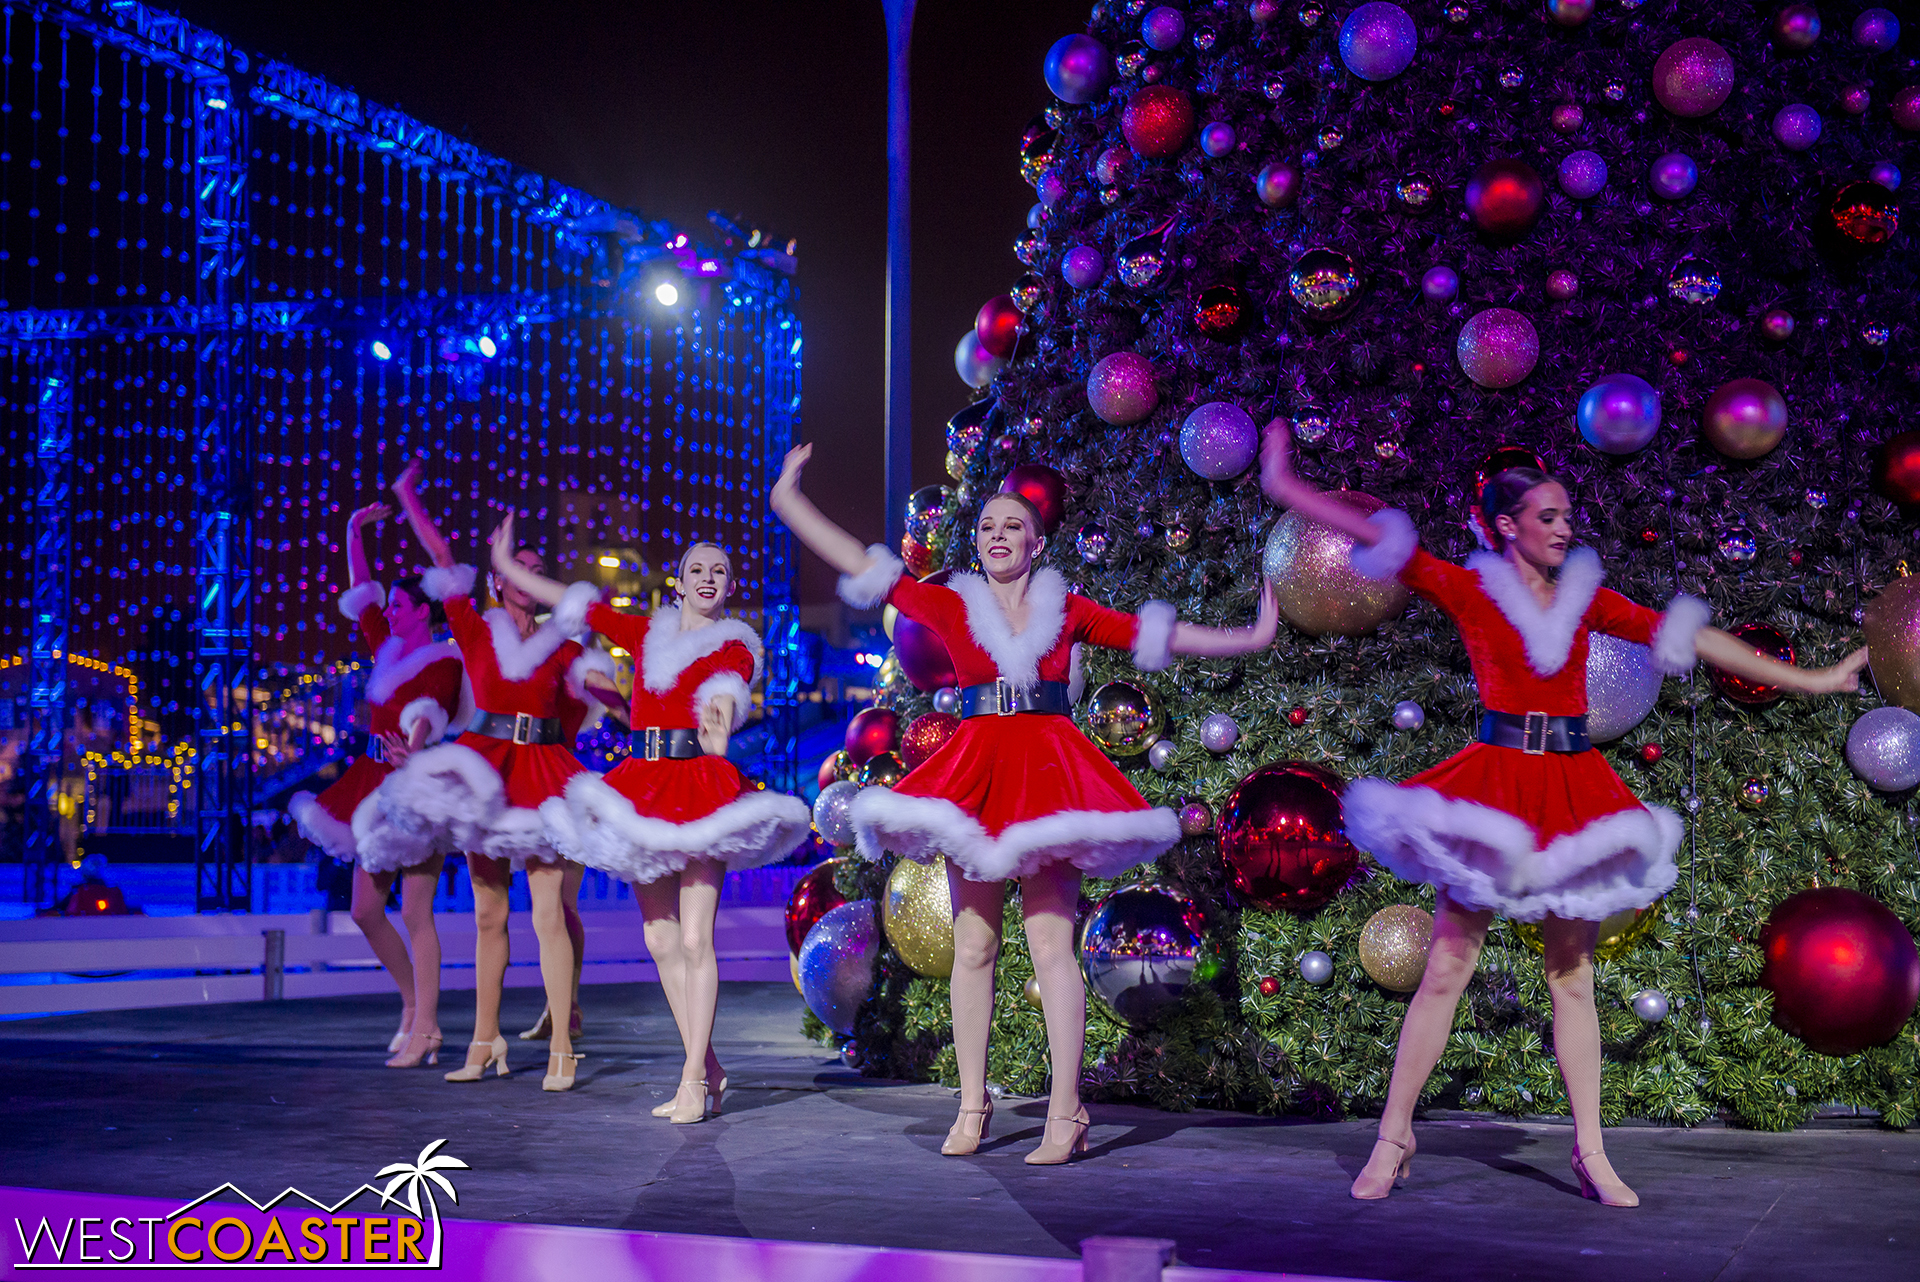 A few times a night, dancers emerge at the central Christmas tree to put on a show.